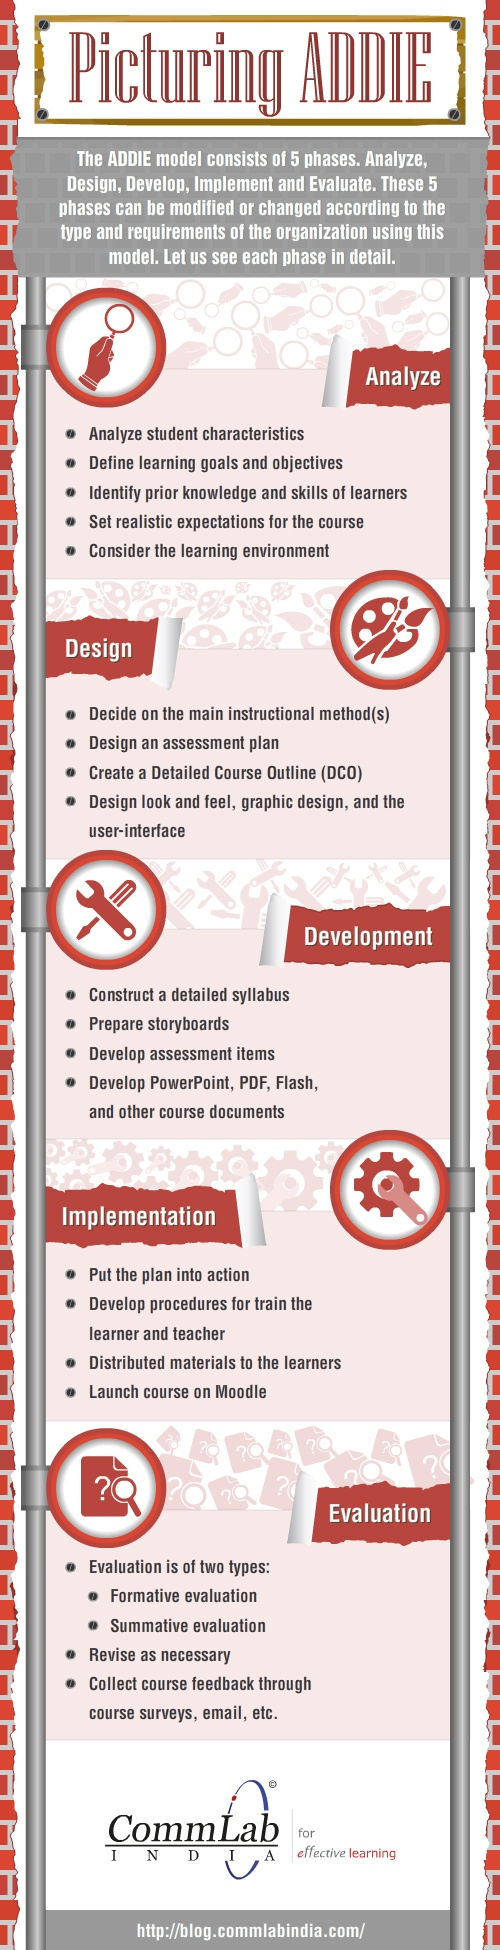 Picturing the ADDIE Instructional Design Model Infographic